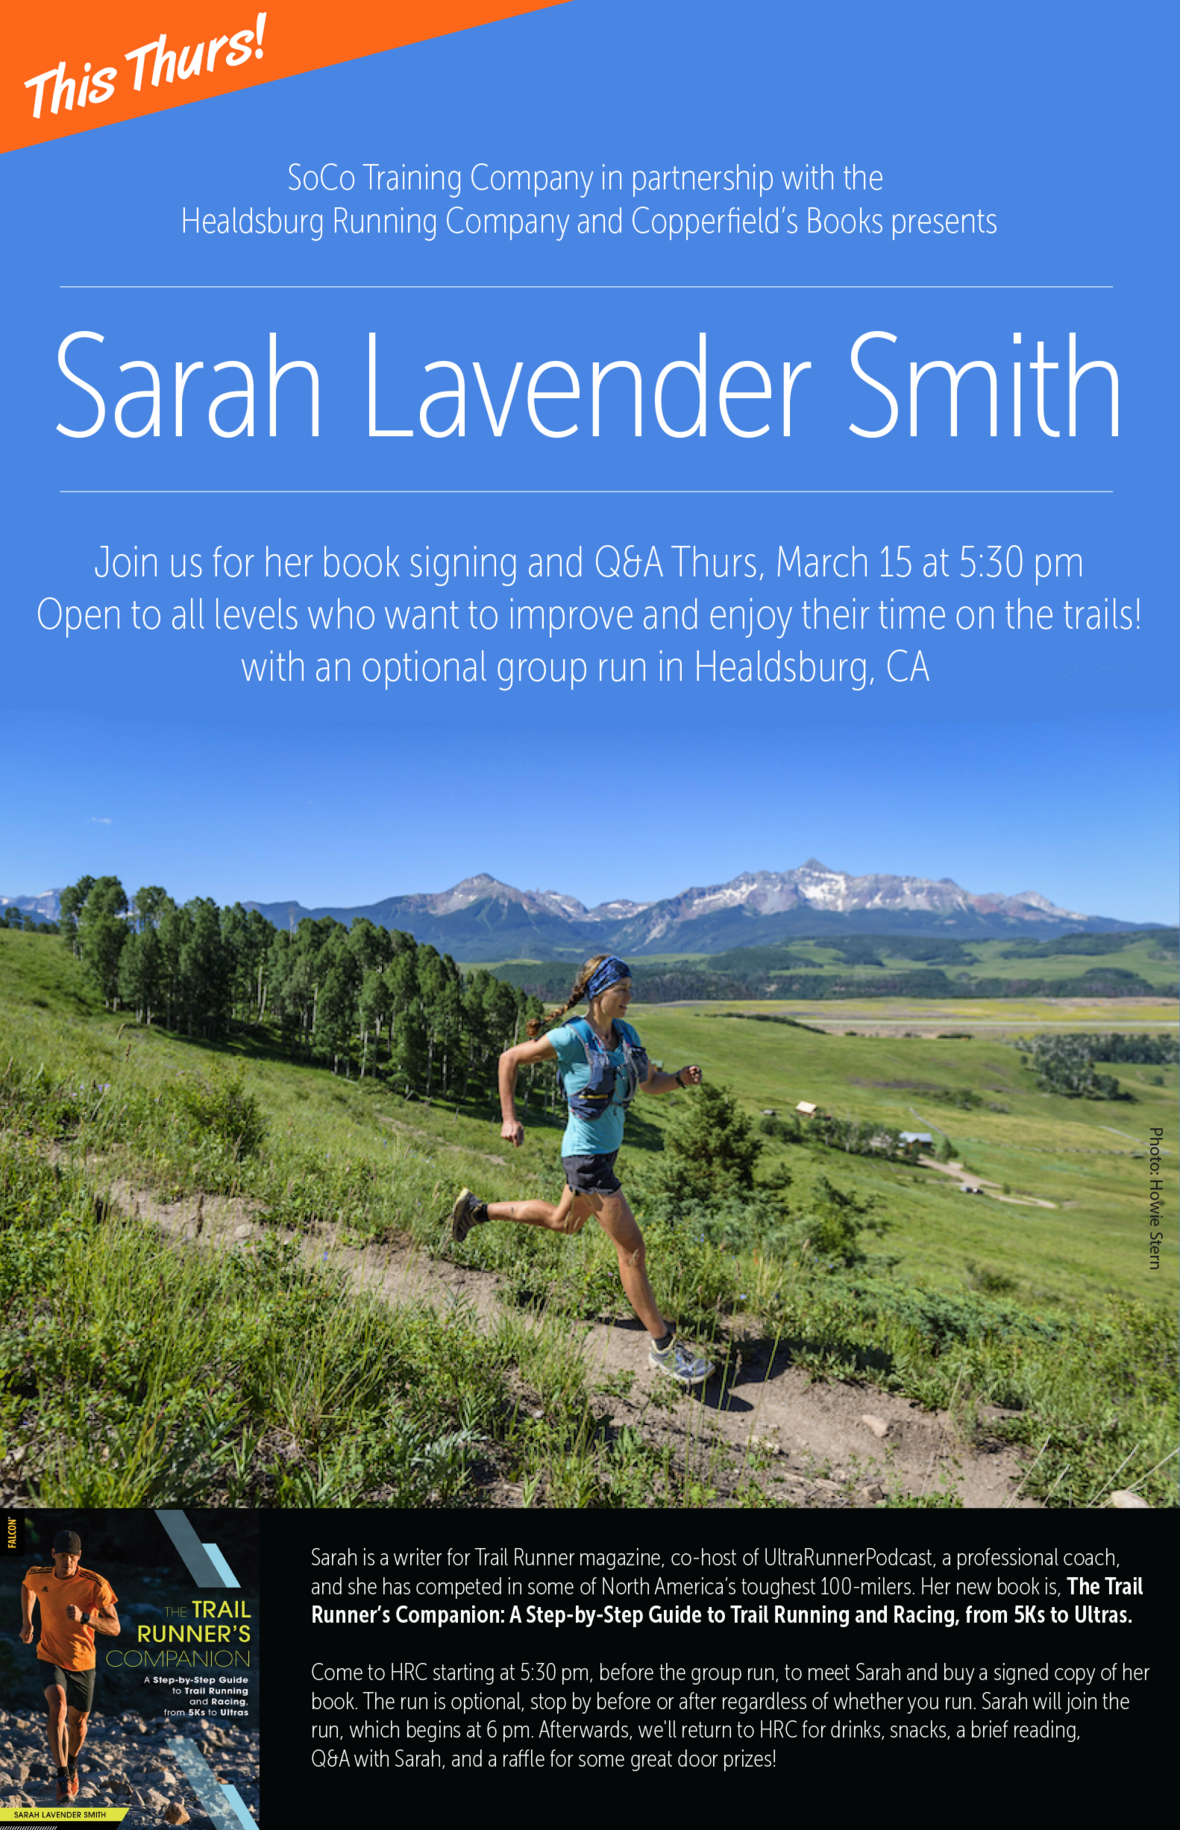 trail runner companion poster thurs